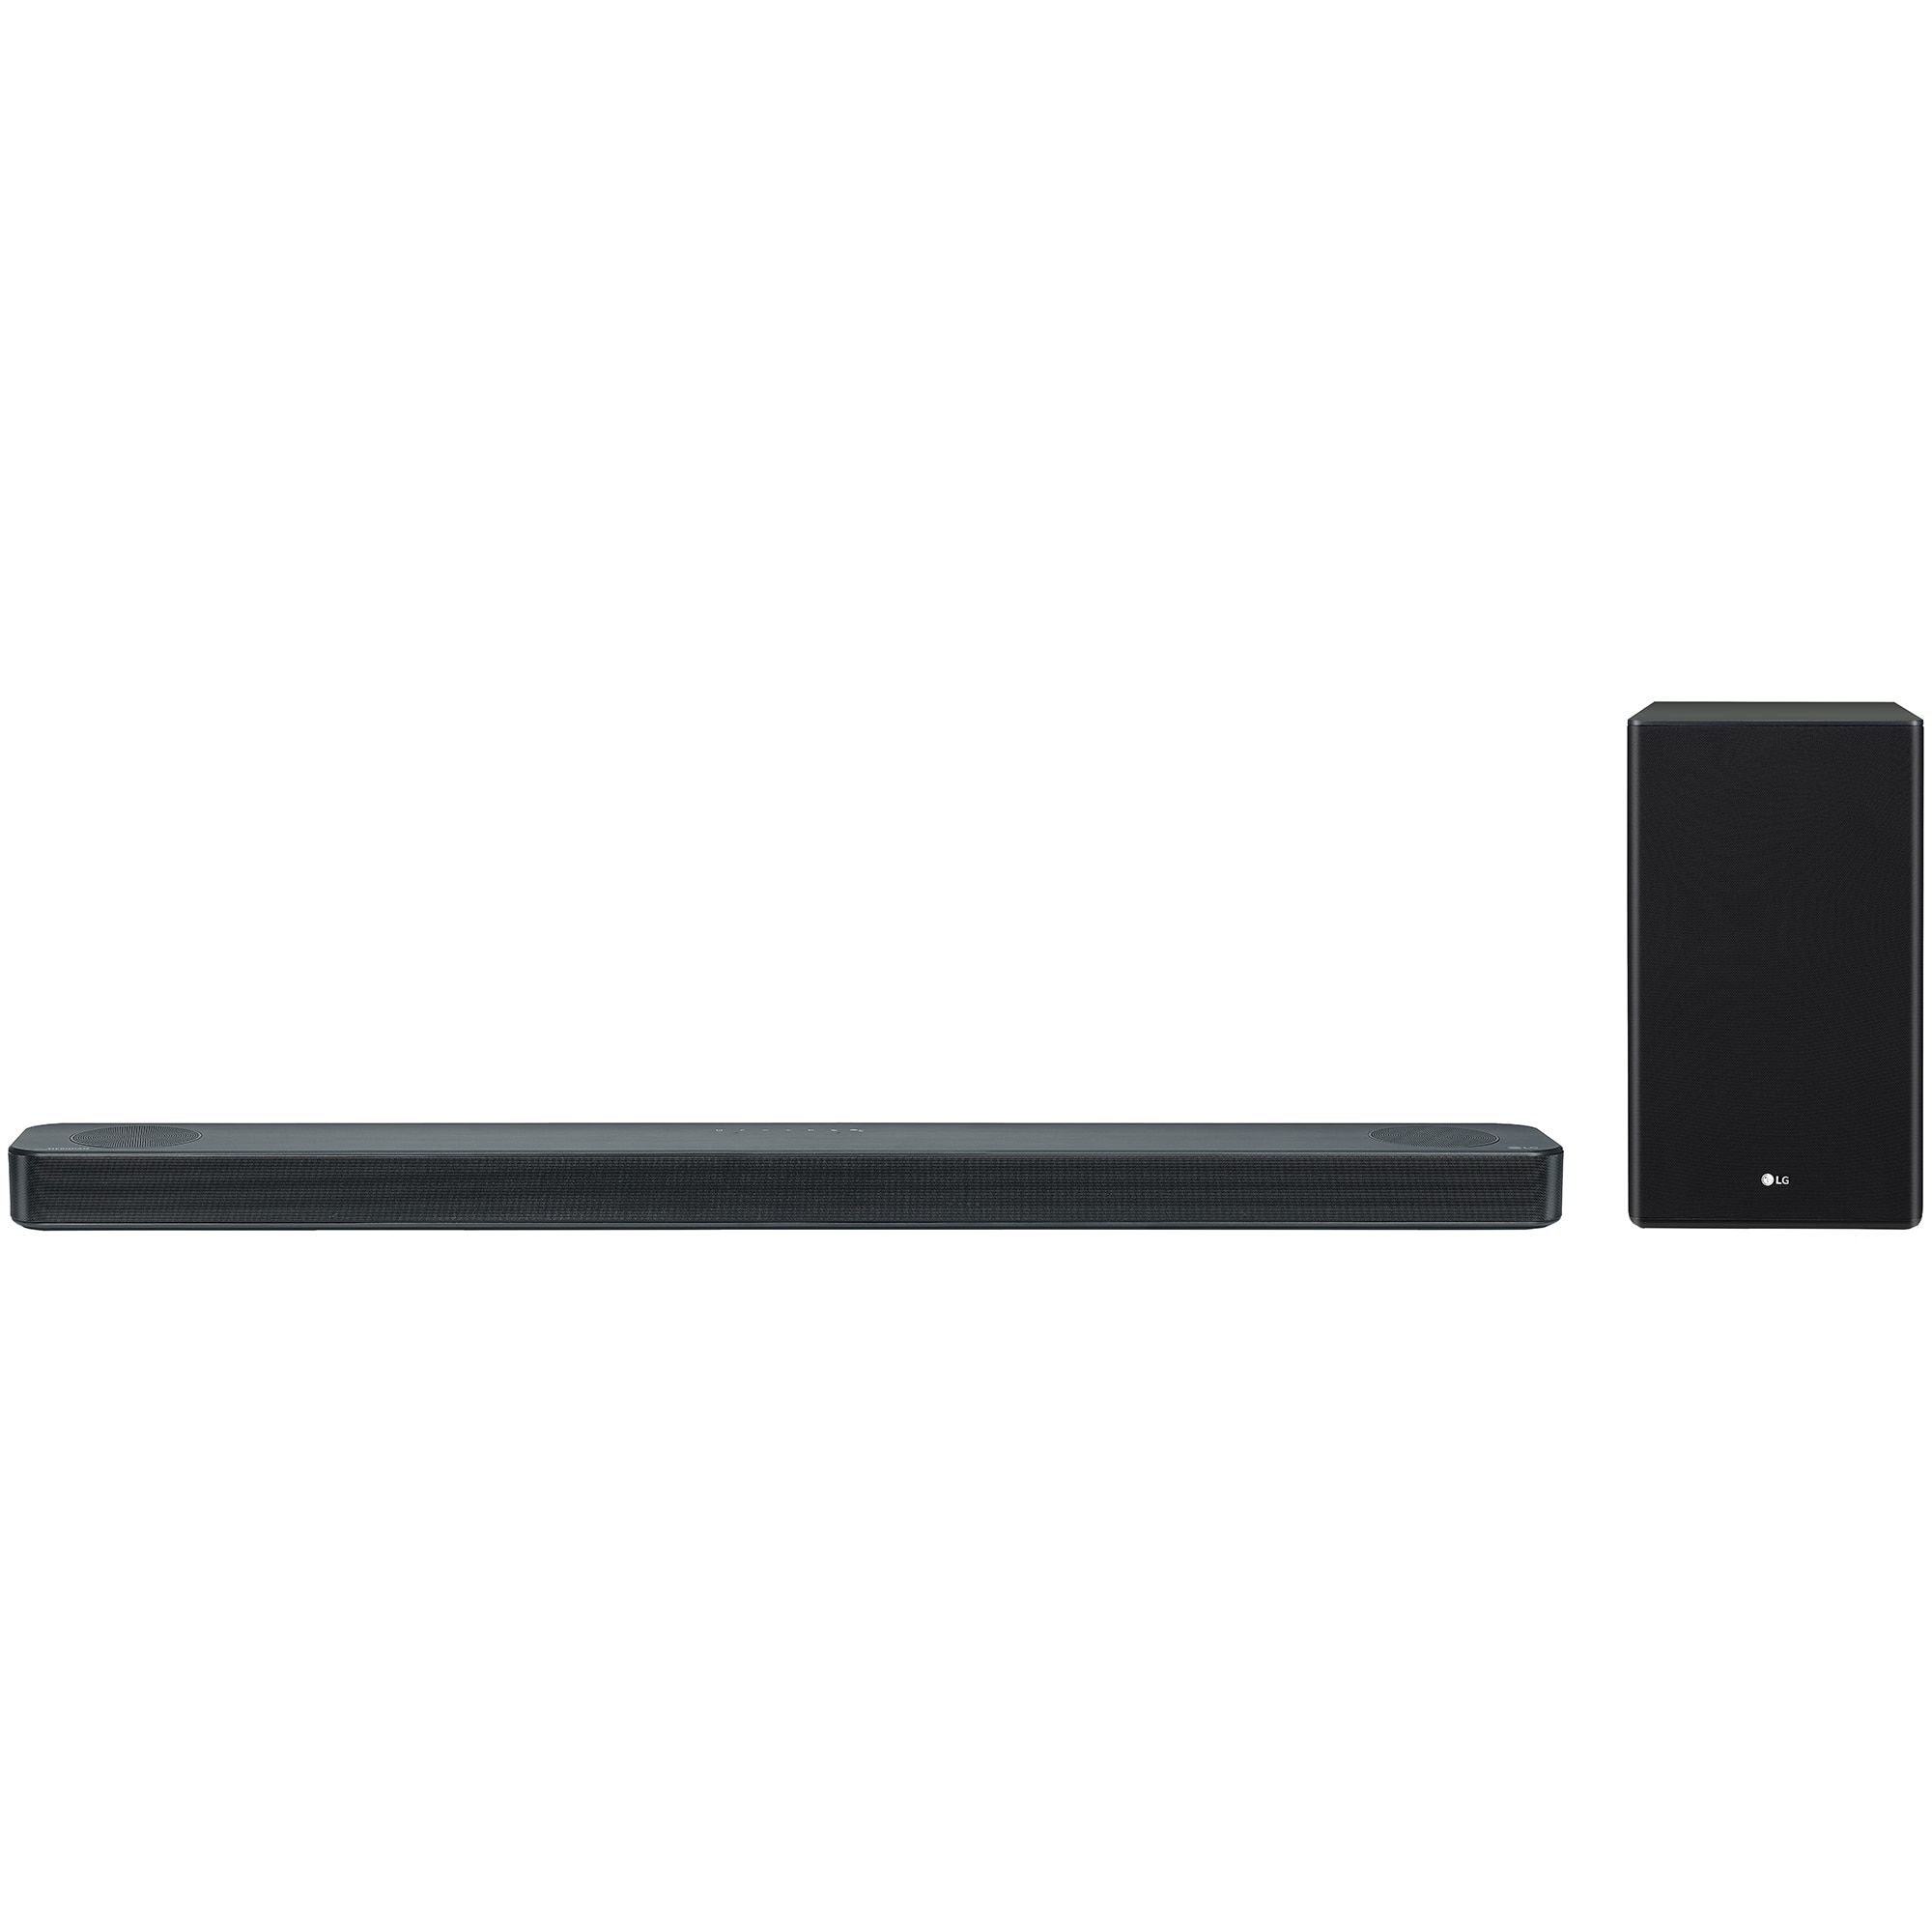 Fotografie Soundbar LG SL8Y, 440W, 3.1.2 , High Res Audio ,Meridian Technology, Dolby Atmos & DTS:X, Wireless Rear Speaker-Ready